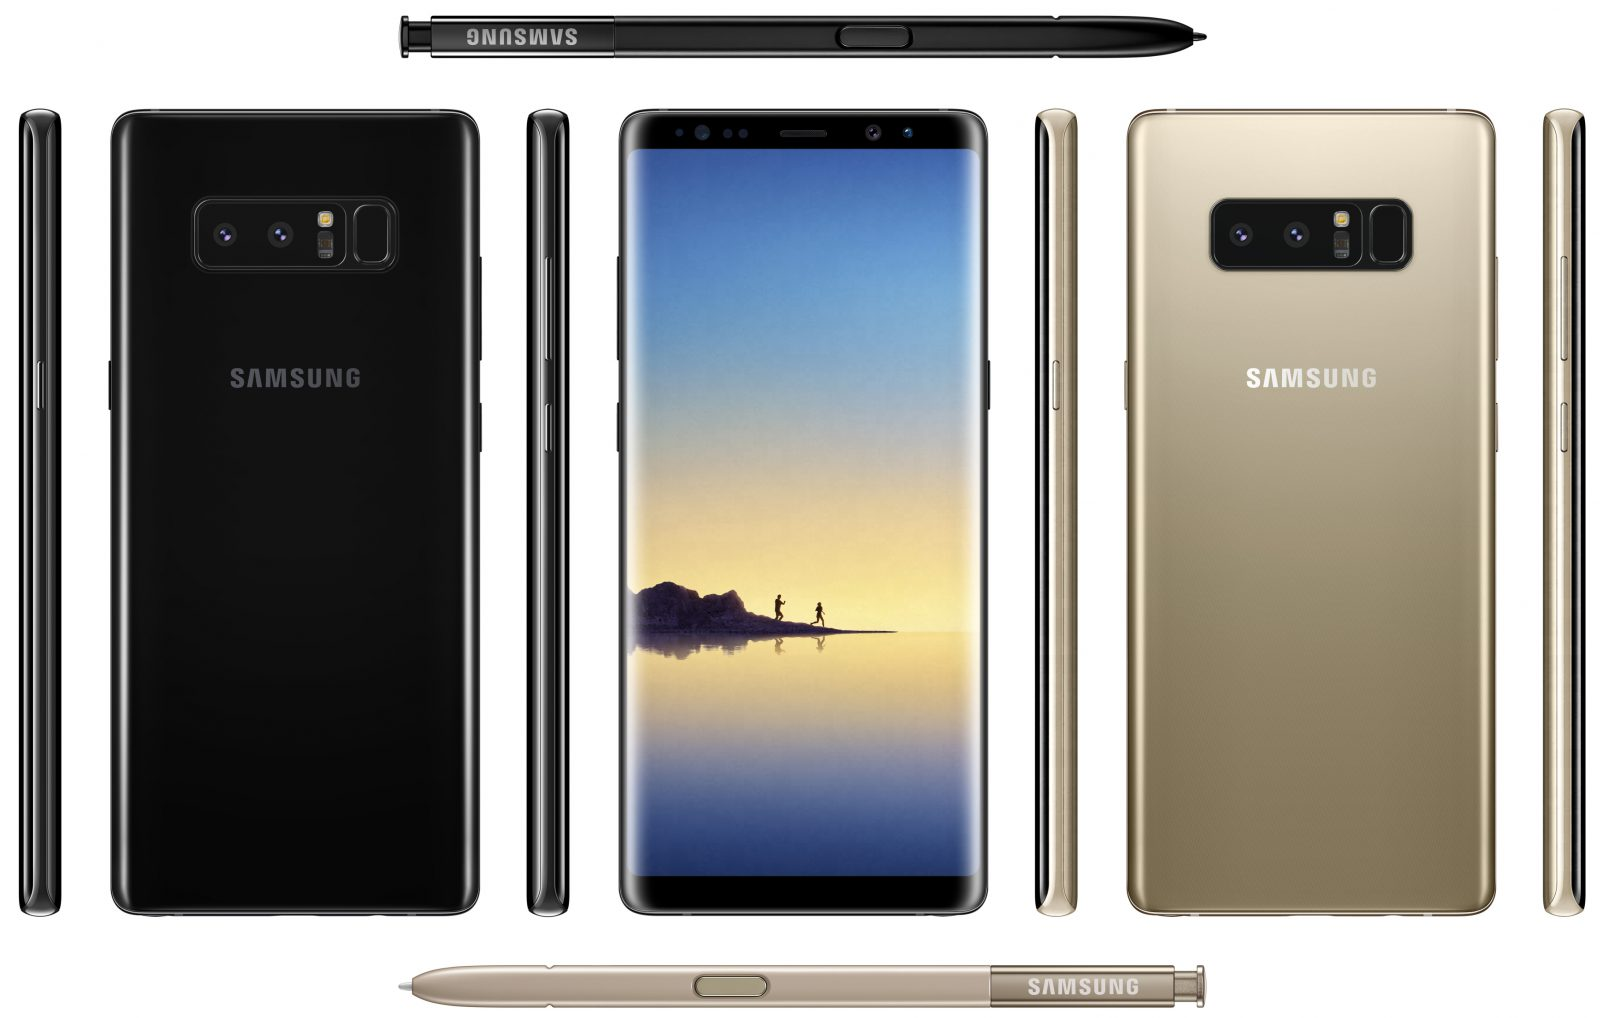 Leaked Images Give Sneak Peek at Samsung's Coming Galaxy Note 8